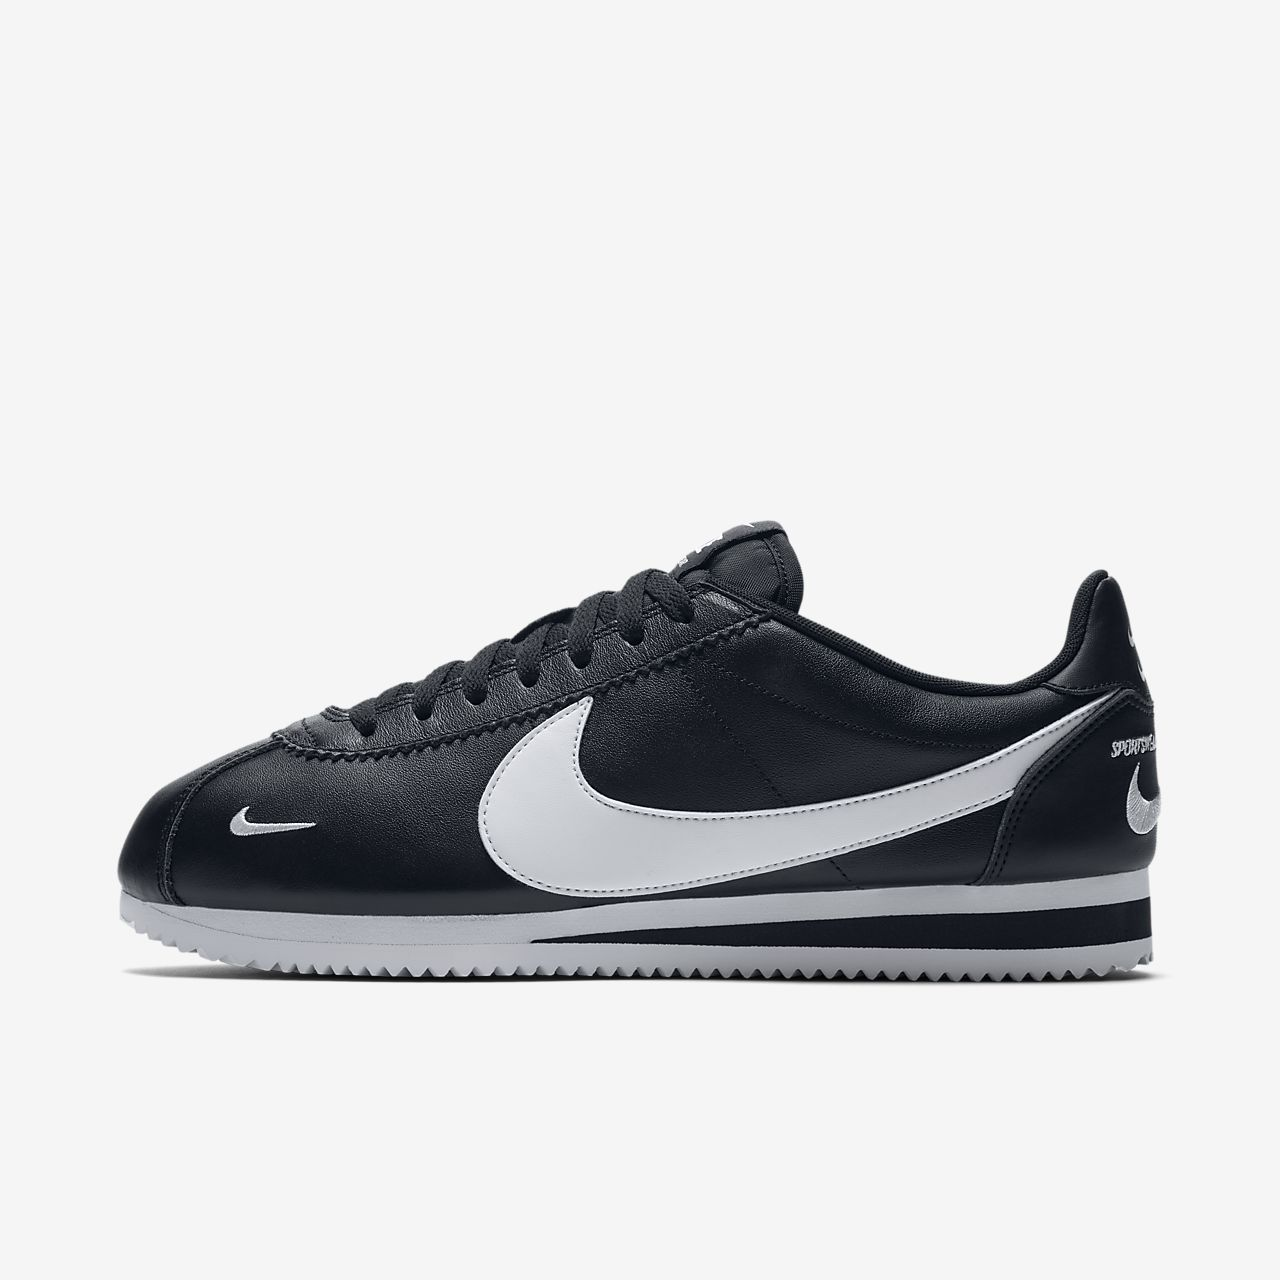 huge discount aa261 688f4 ... Chaussure mixte Nike Classic Cortez Premium